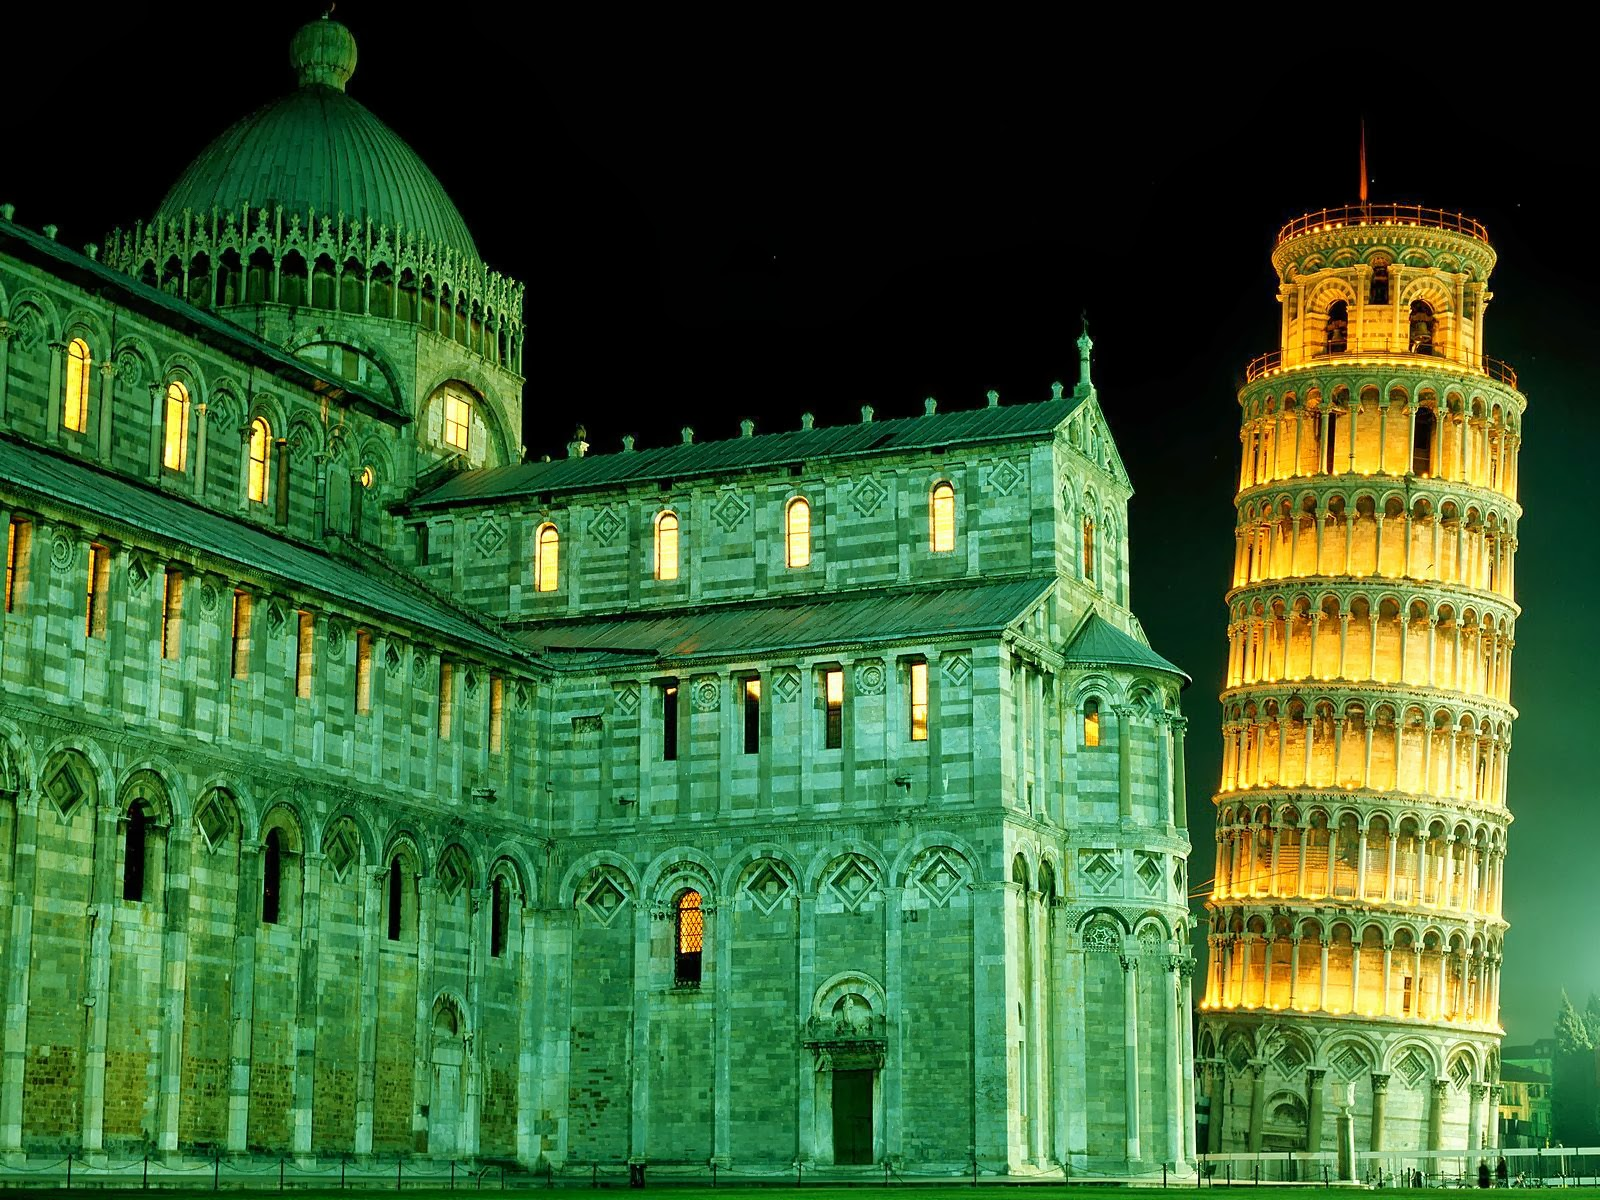 duomo leaning tower pisa italy wallpapers - Duomo Leaning Tower Pisa Italy Wallpapers HD Wallpapers